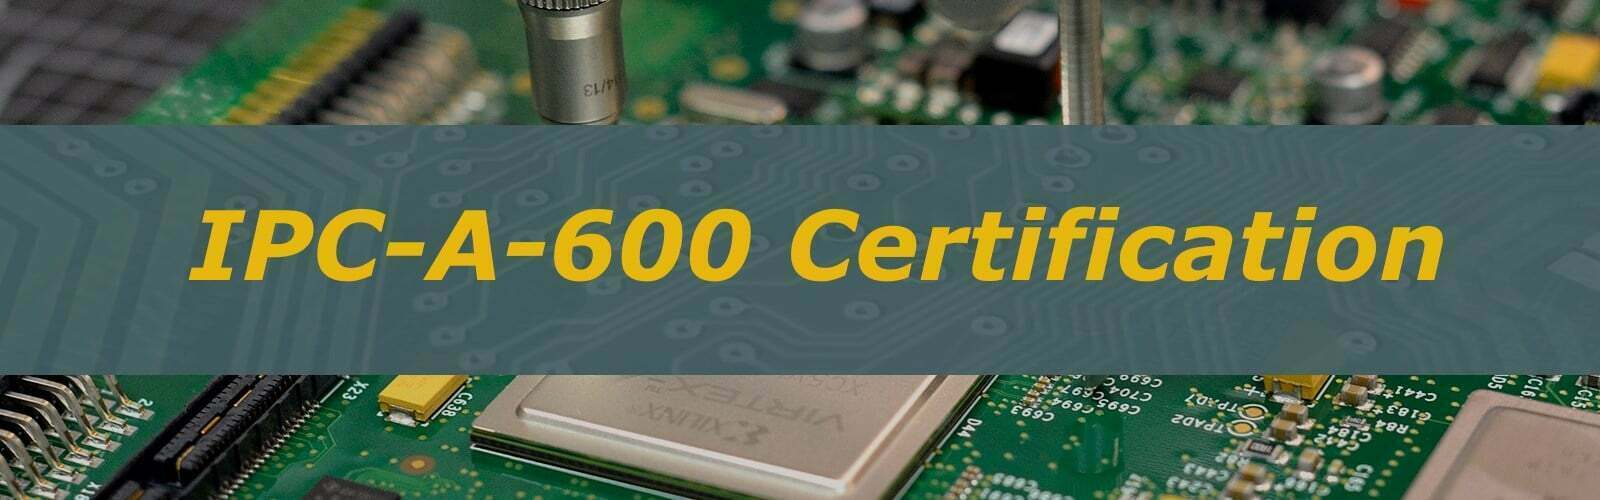 CERTIFICATION IPC-A-600 CERTIFIED STANDARD EXPERT (CSE)